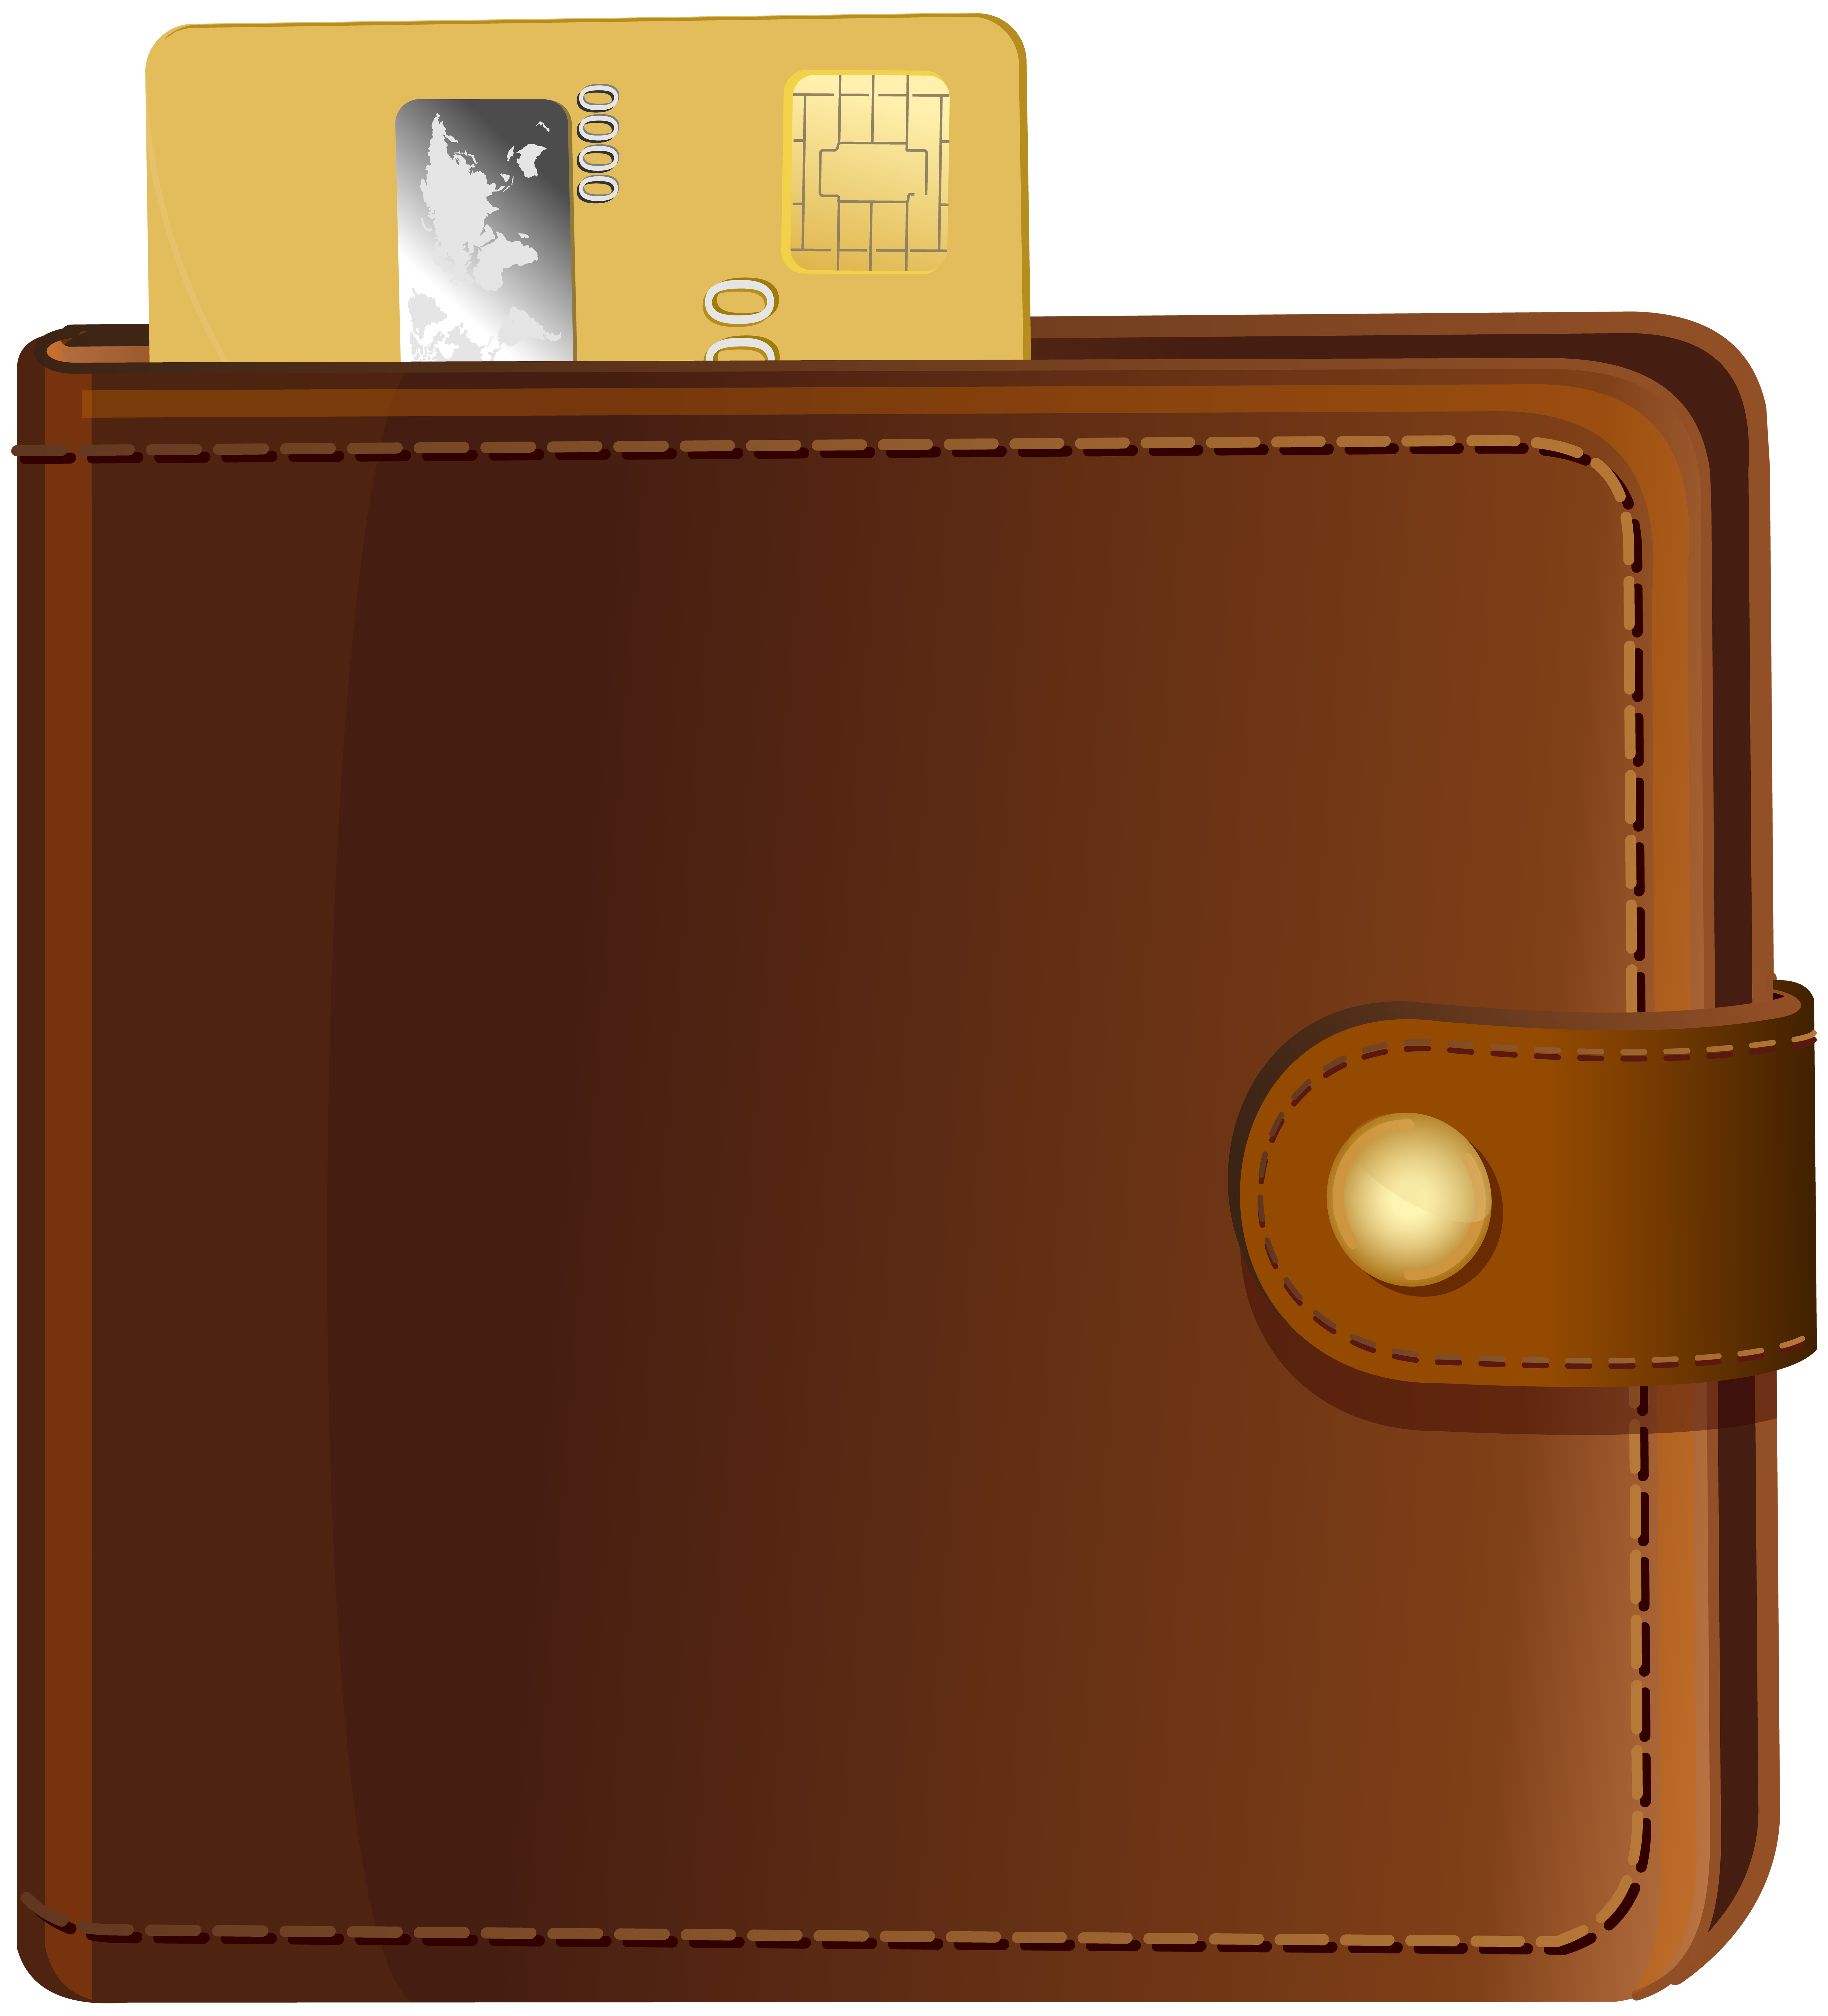 With credit card transparent. Wallet clipart